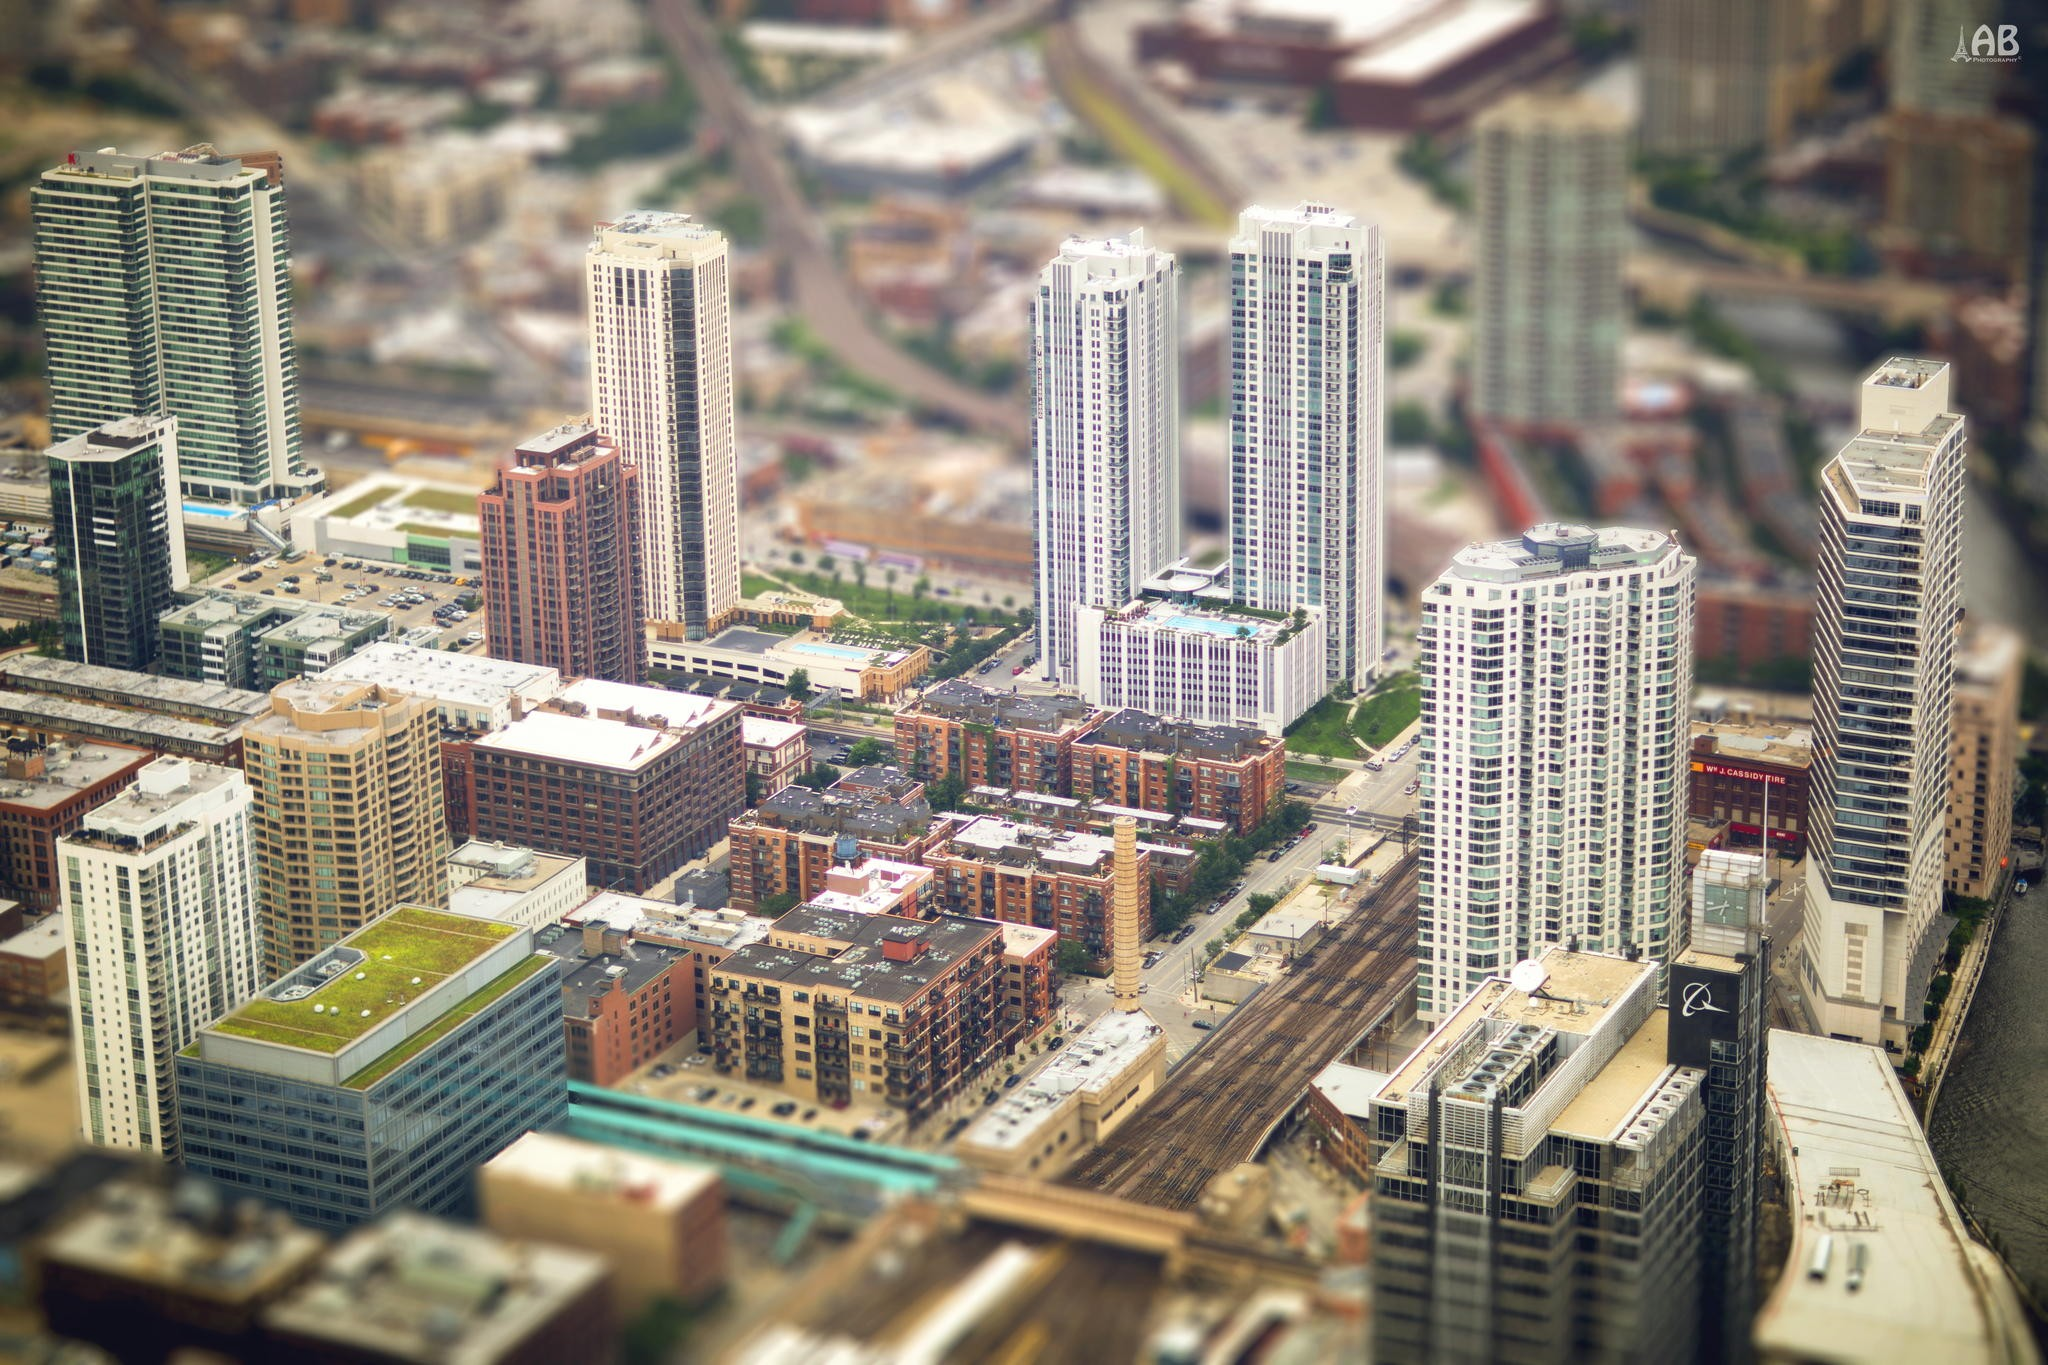 General 2048x1365 architecture building house tilt shift city Chicago USA street rooftops blurred cityscape road